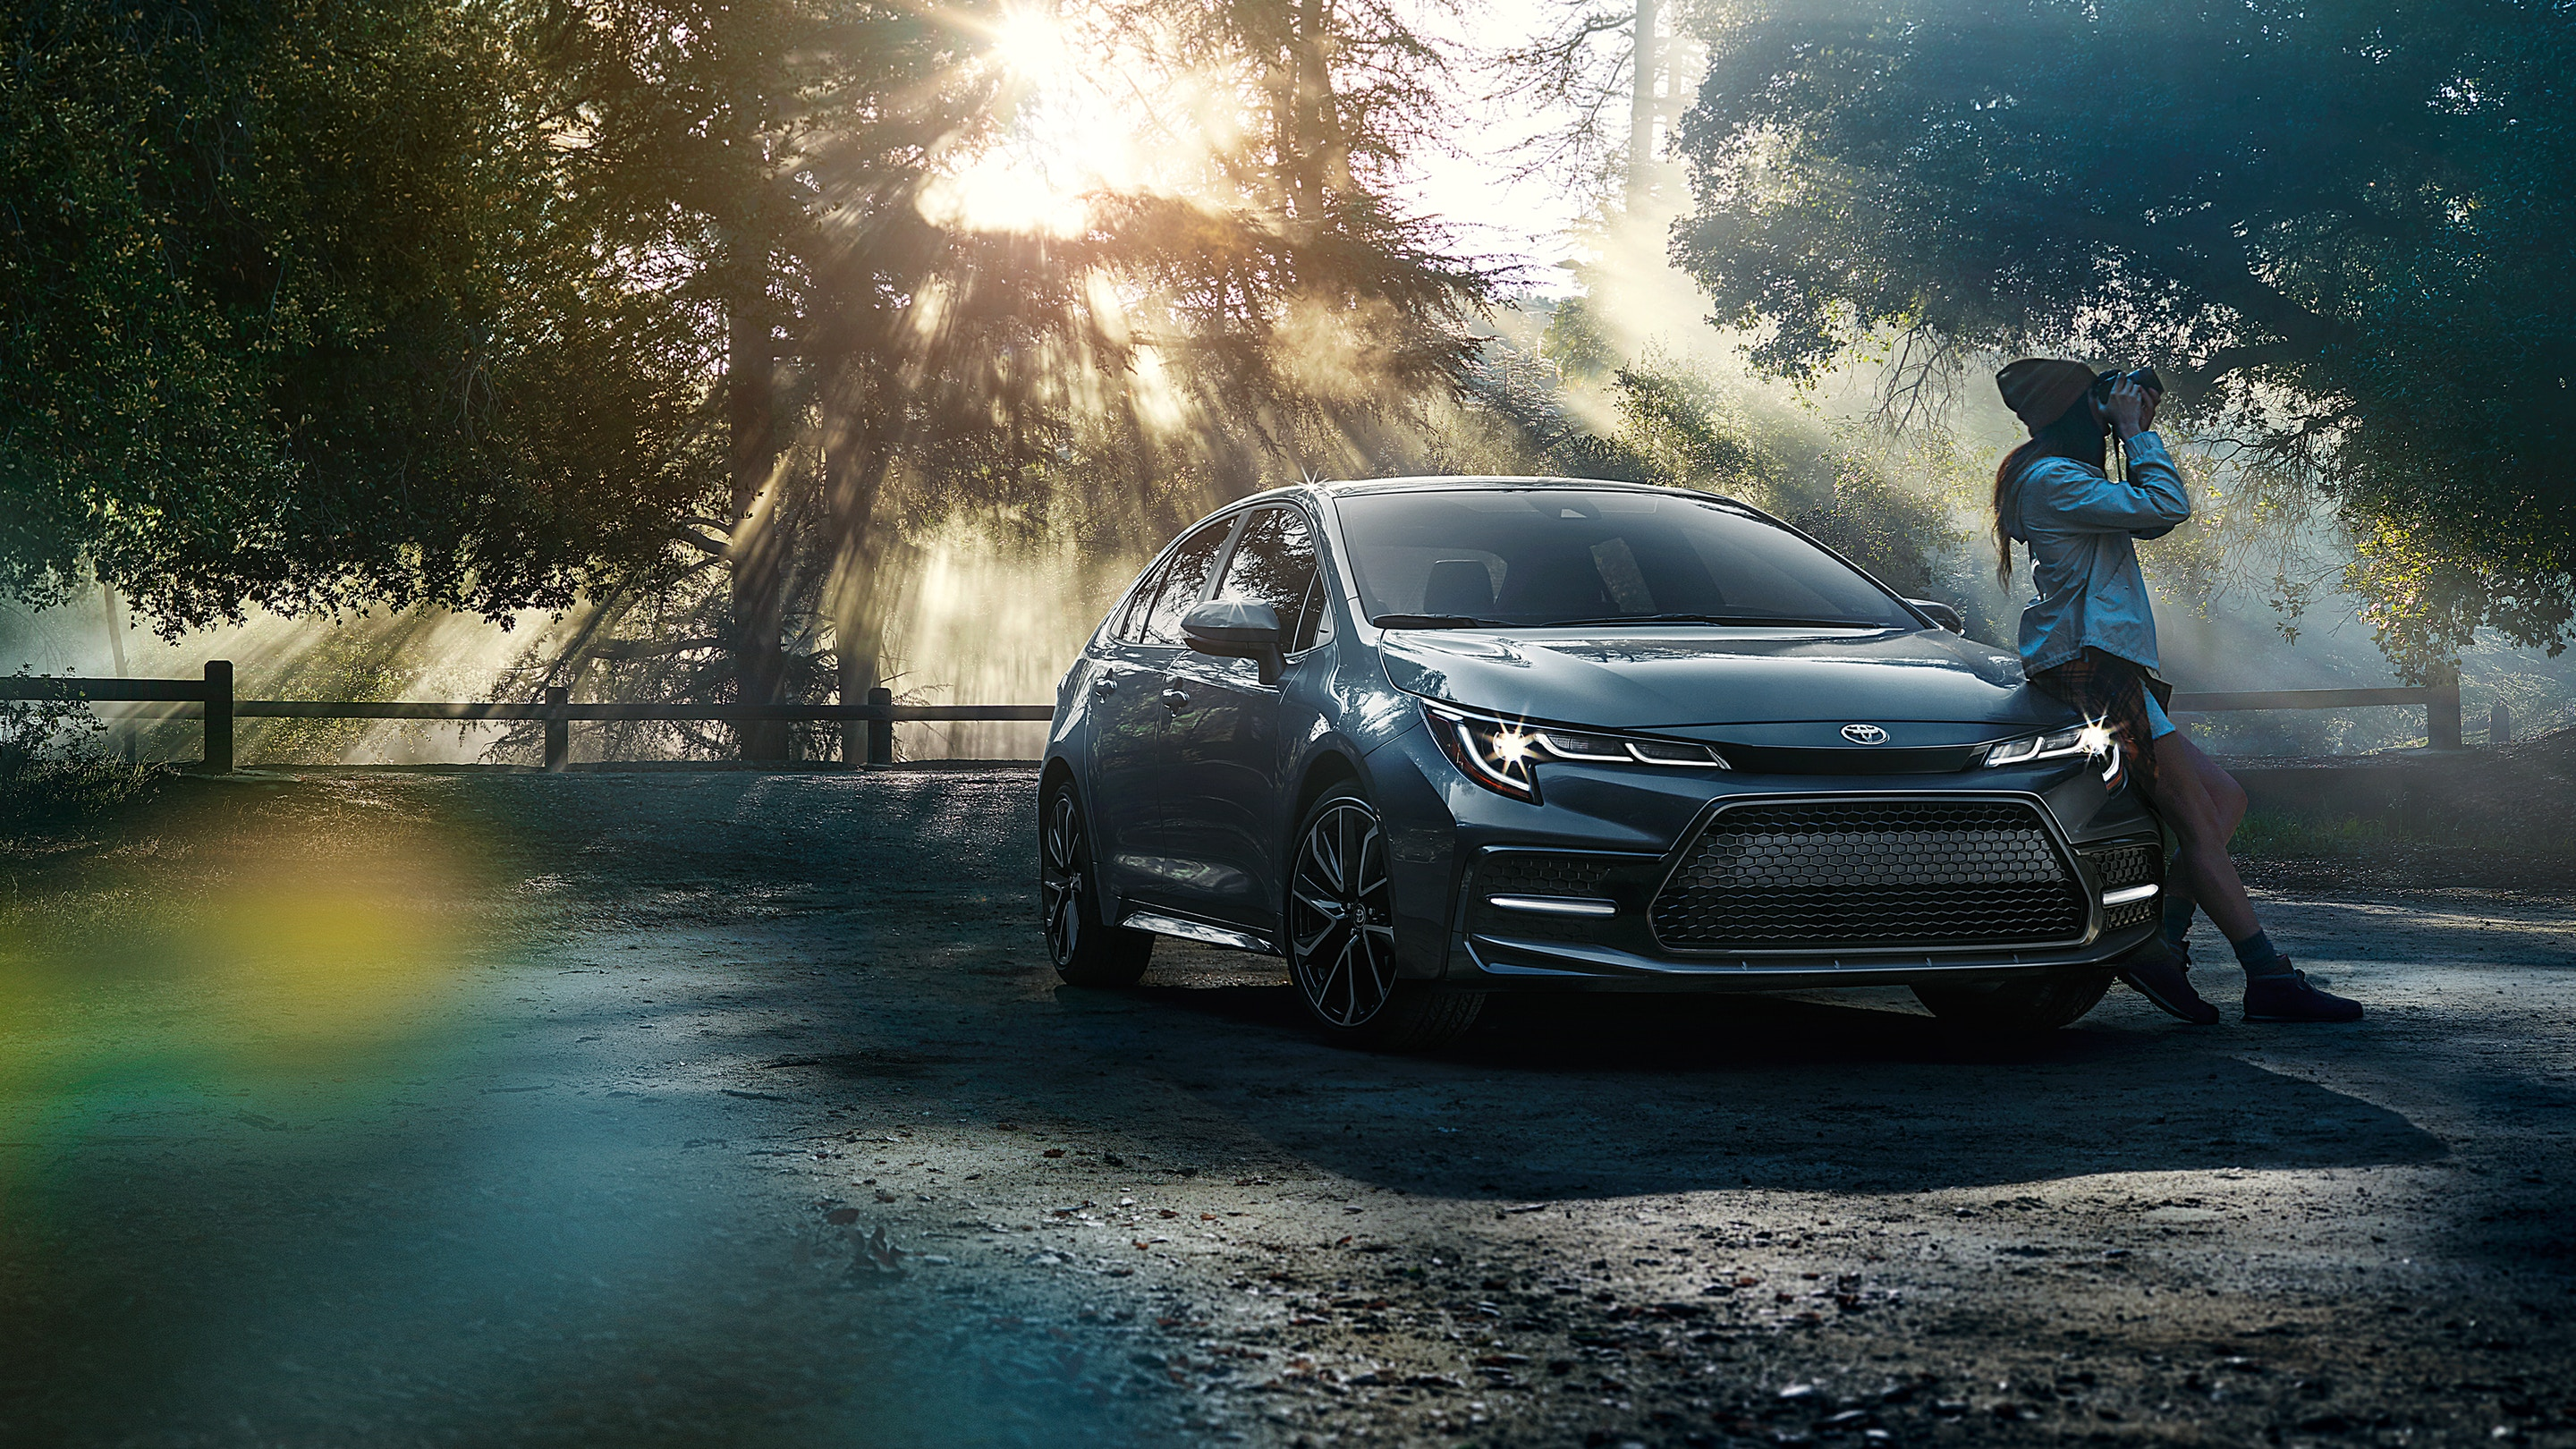 2020 Toyota Corolla Leasing near Cleveland, OH